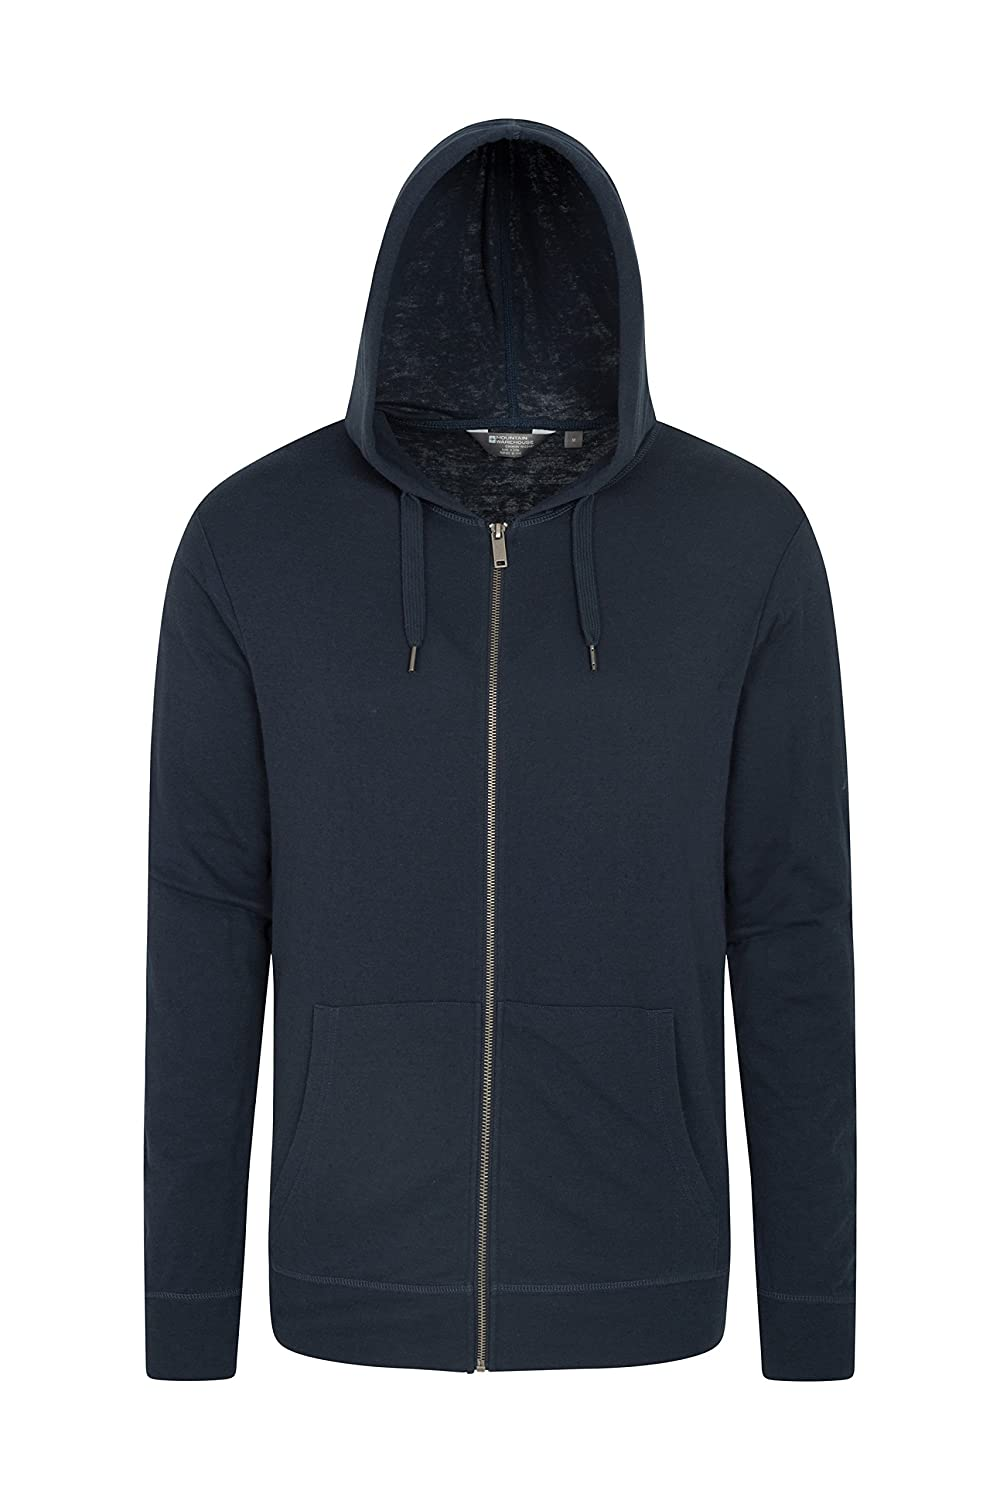 Mountain Warehouse Woolamai Mens Hoodie - Rivestimento di Estate di Antipill, Cappotto conveniente & Casuale Registrabile del Cappuccio, per la Molla Che Viaggia